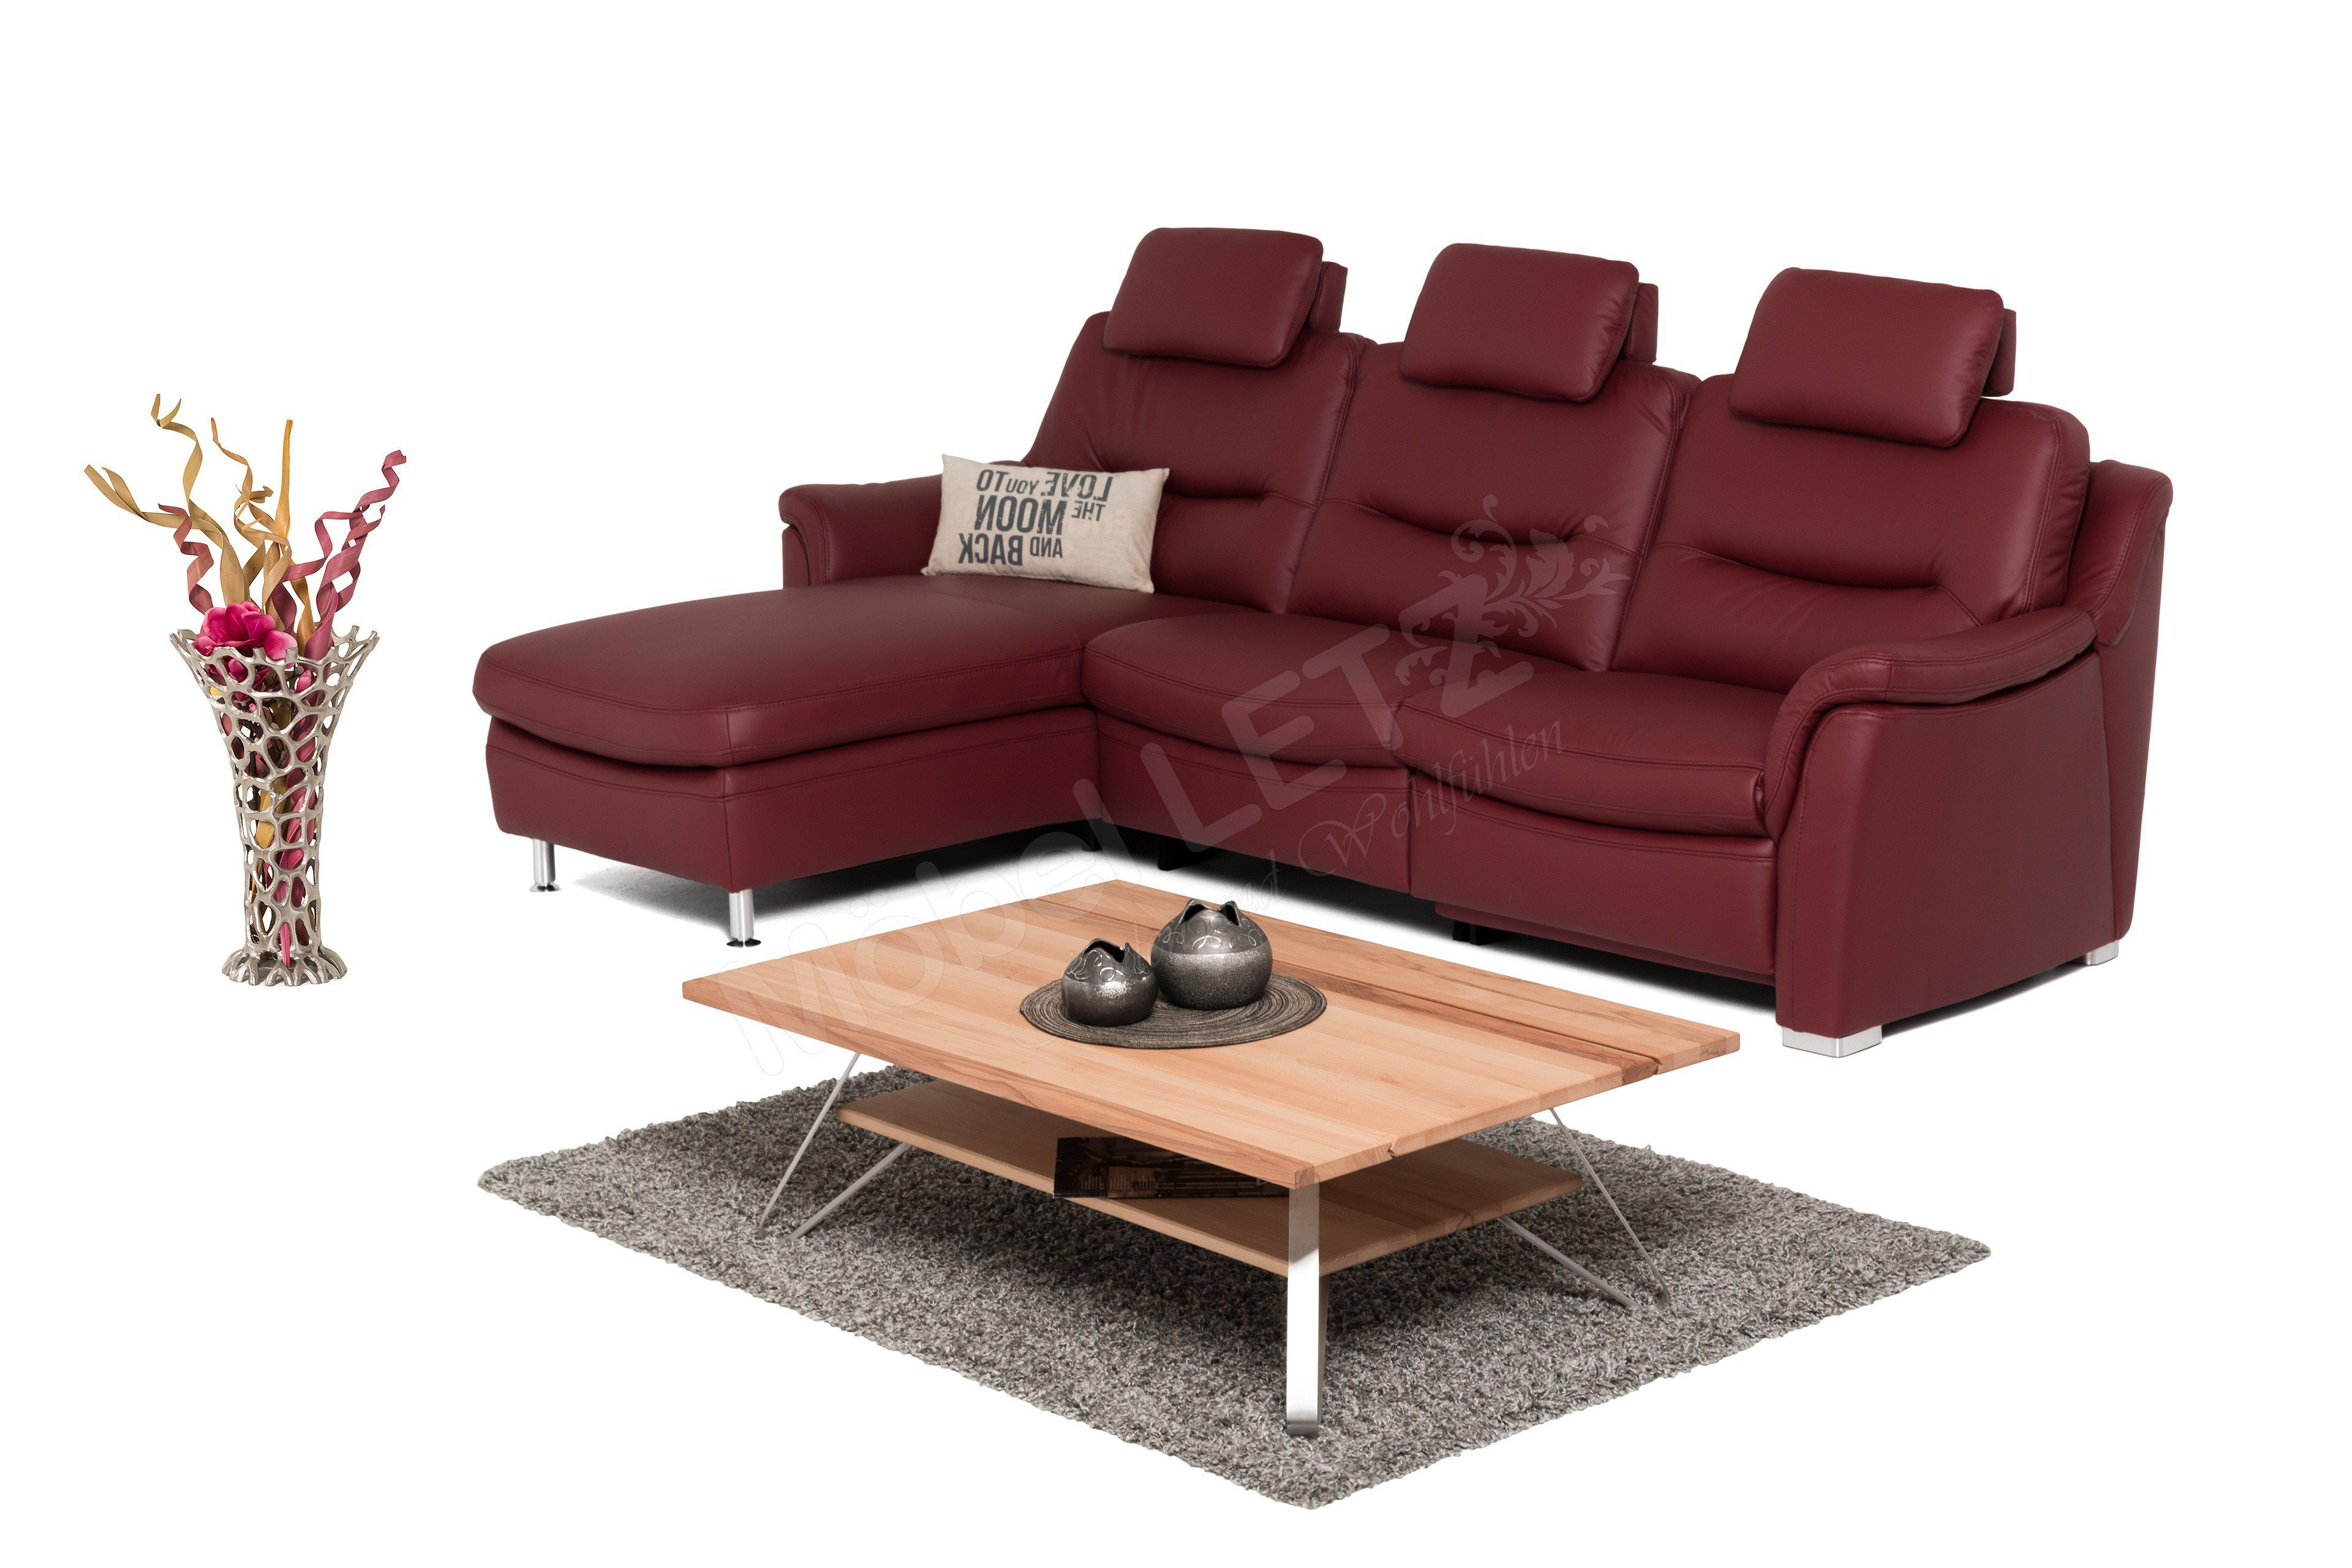 Hollywood Von Hukla   Ledersofa Variante Links Rot